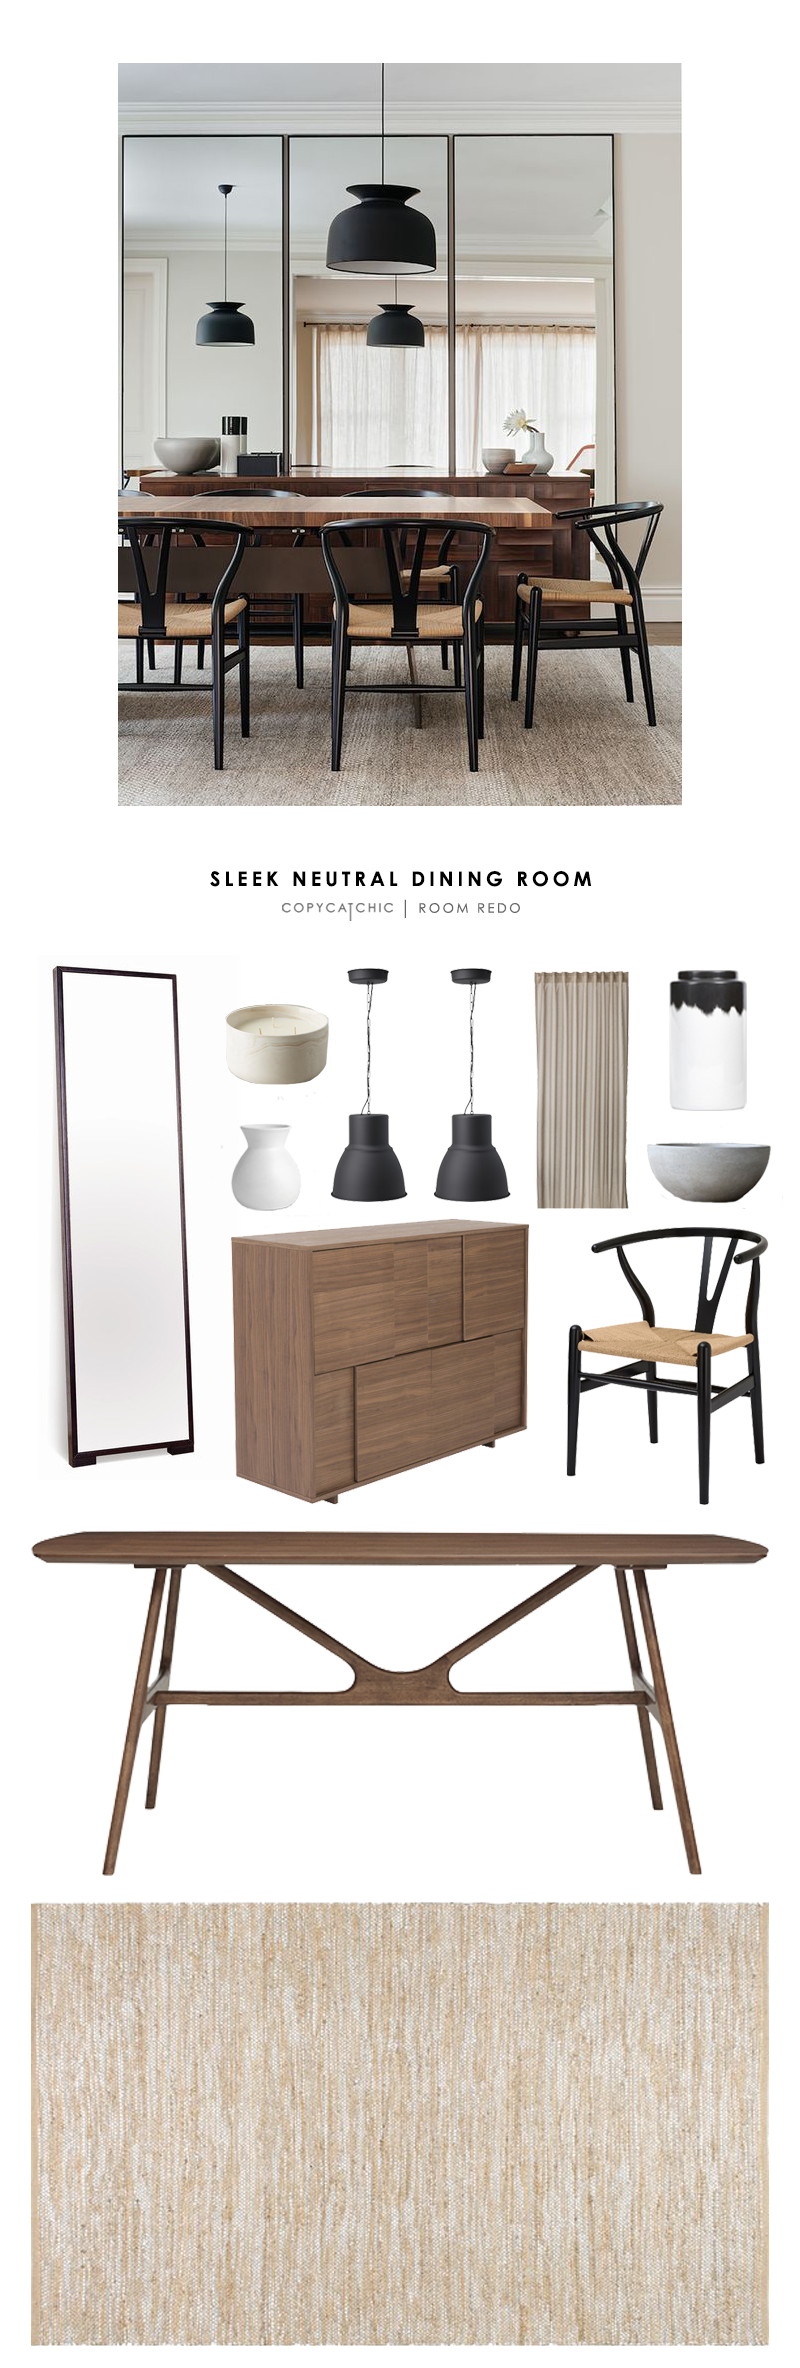 An amazing, sleek, neutral, midcentury modern, dining room designed by Arent & Pyke and recreated for Copy Cat Chic | look for less budget home decor